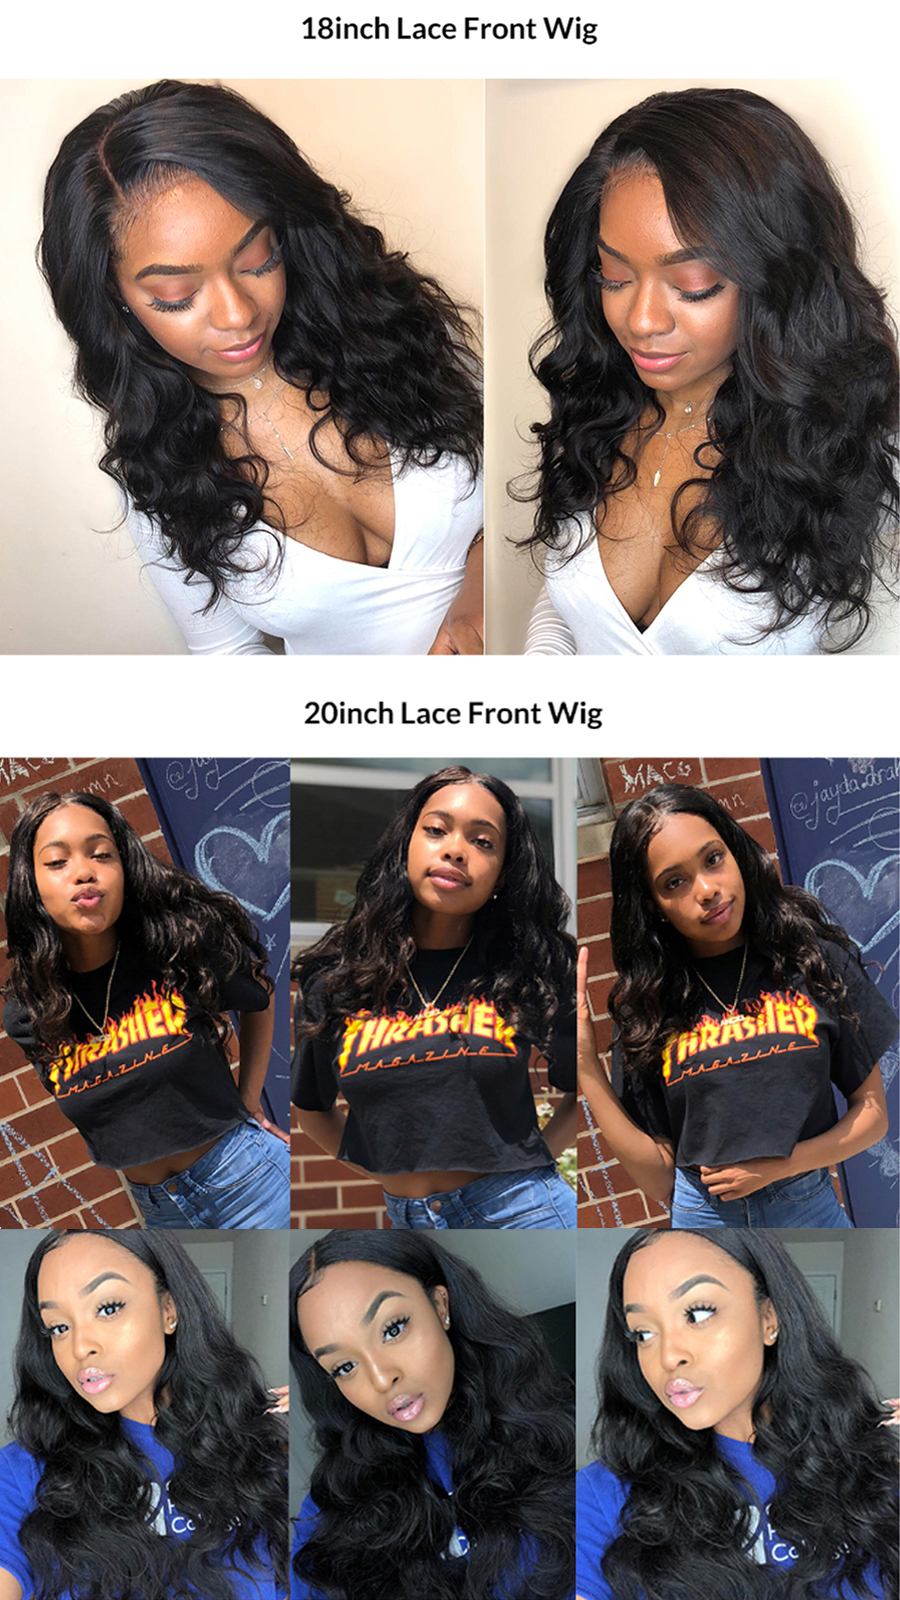 H4565f15dc40b4ffb8c0c86bbeb22a5dee Body Wave Lace Frontal Wig Human Hair Wigs 13×4 Lace Frontal Human Hair Wigs For Black Women Pre Plucked Non Remy Hair